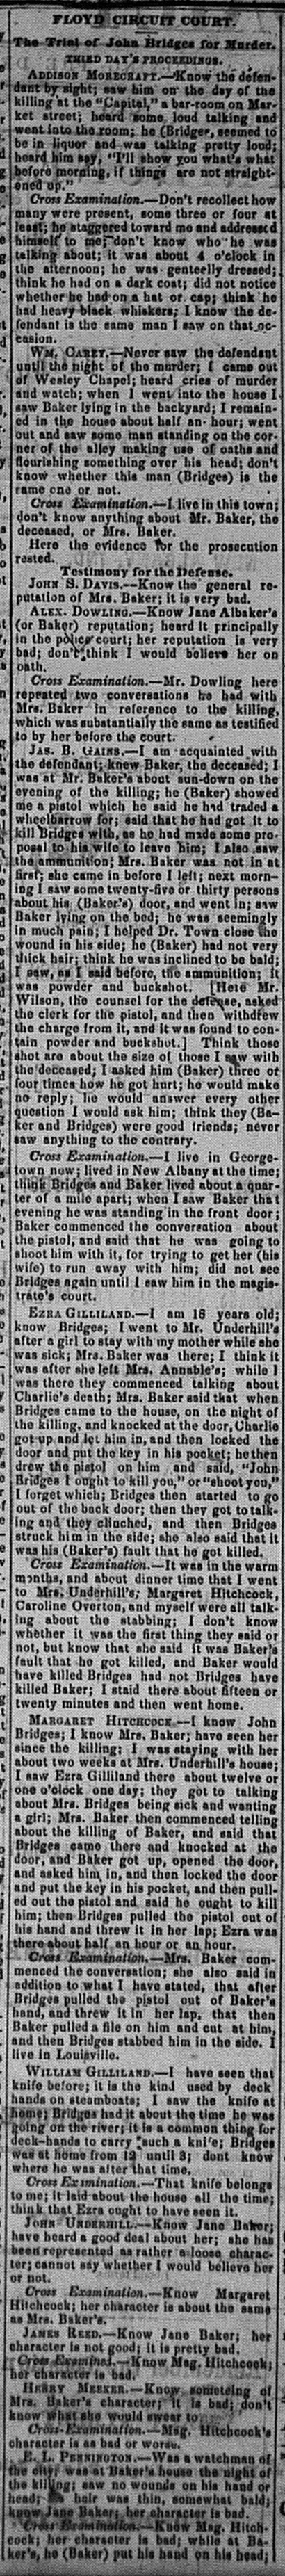 New Albany Daily Tribune, Friday, 4 November 1859, p.2, column 3, Stuart Barth Wrege Indiana History Room